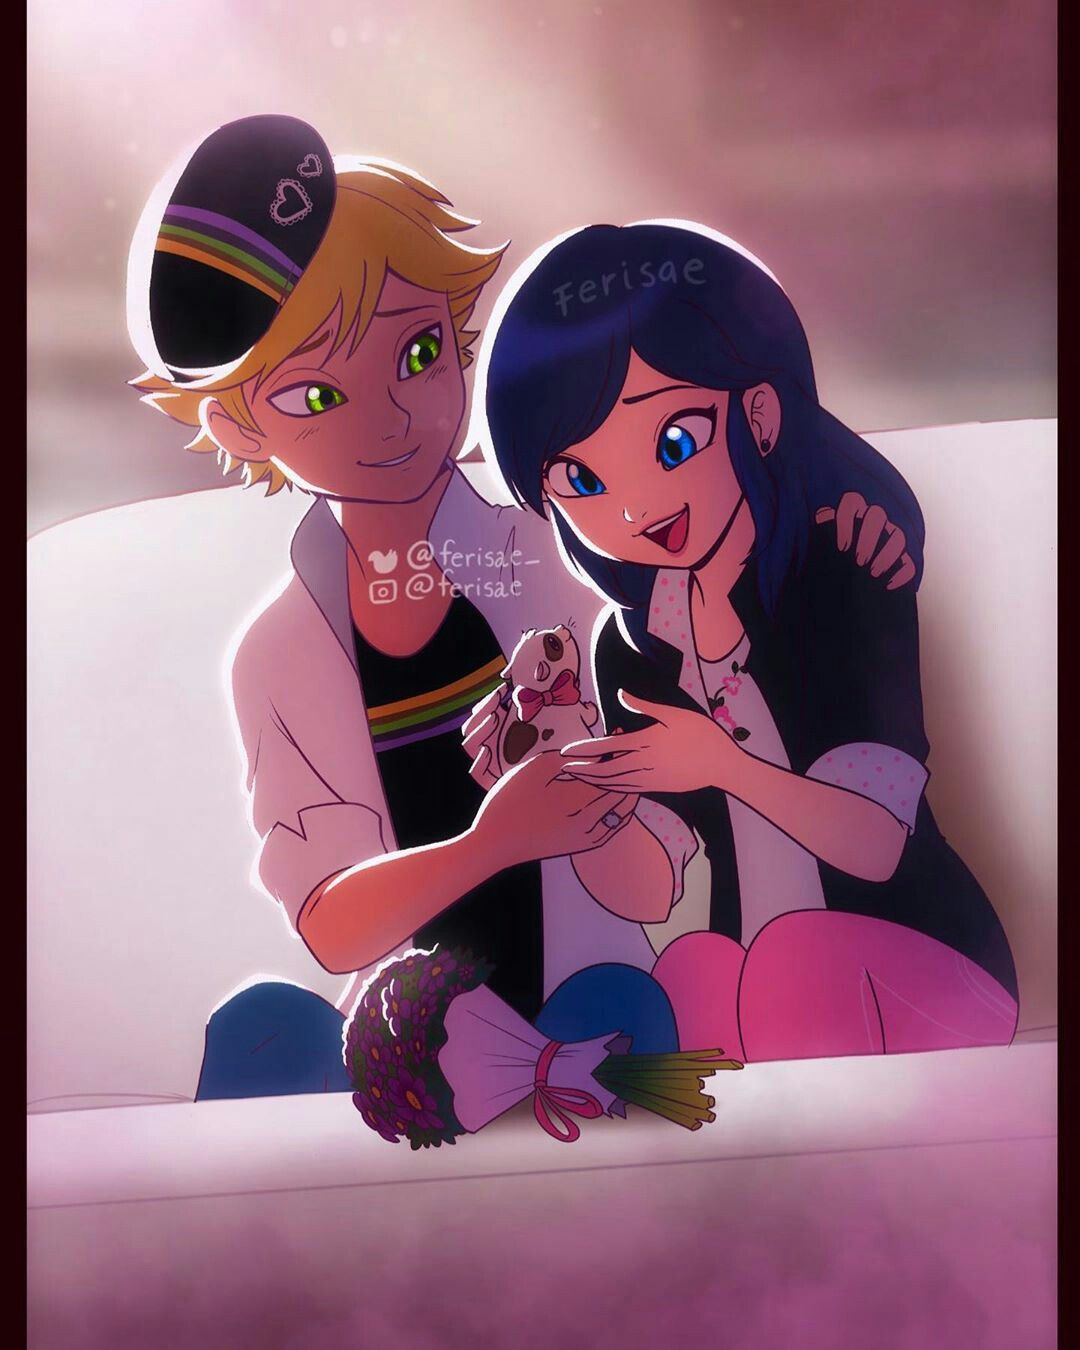 Pin by Lill on Miraculous in 2020 | Miraculous ladybug